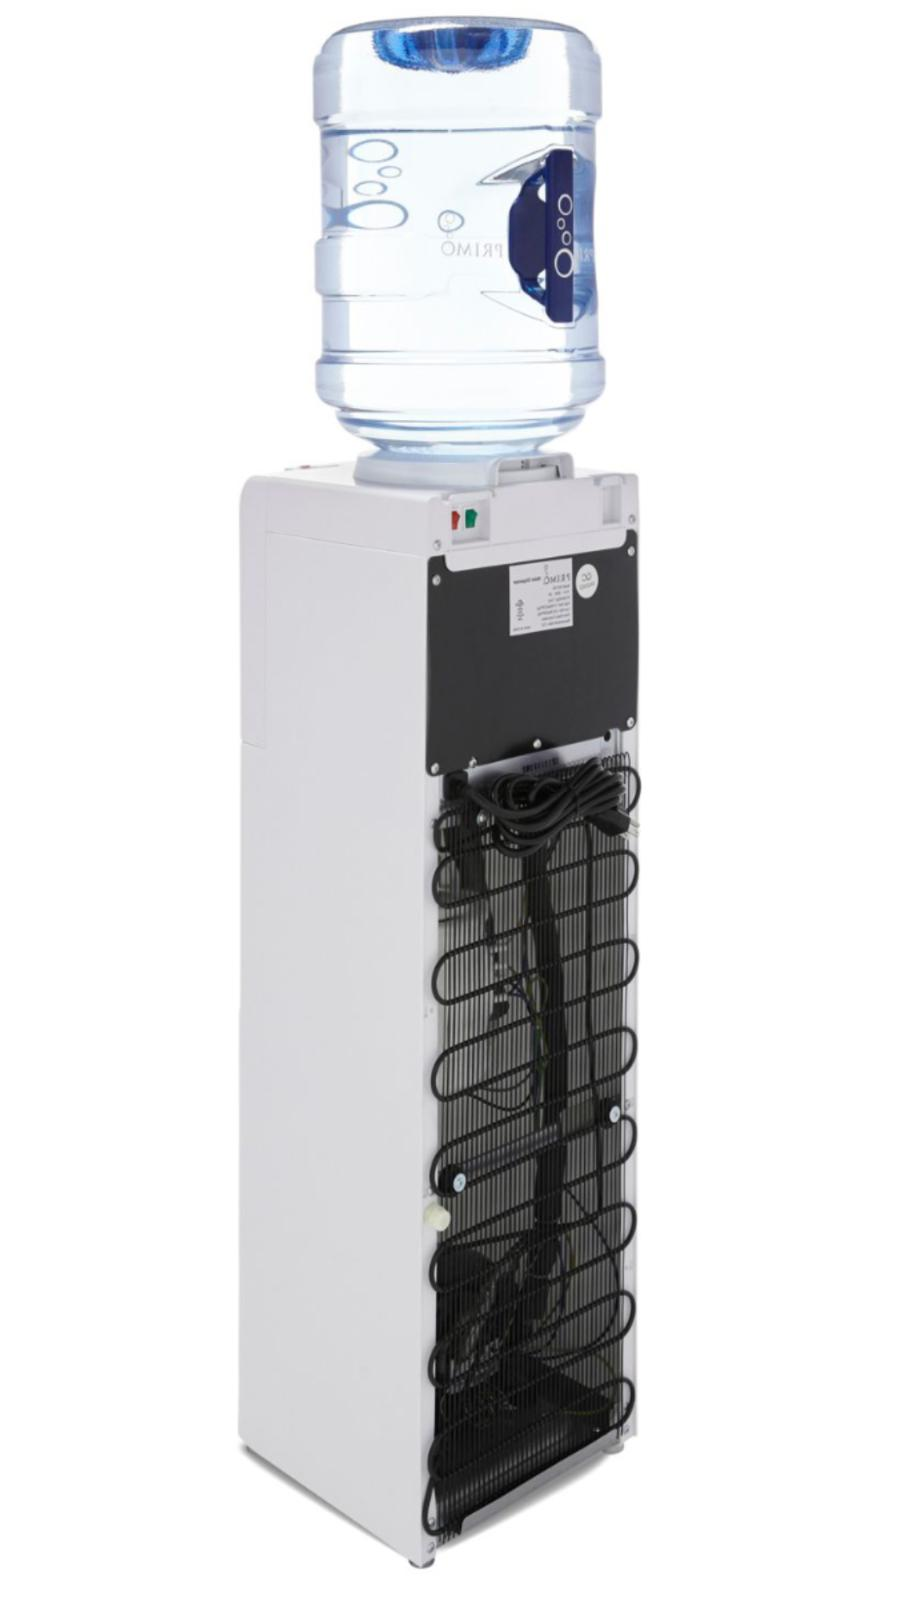 Primo Top-Loading Cold and Hot Water Cooler ENERGY STAR